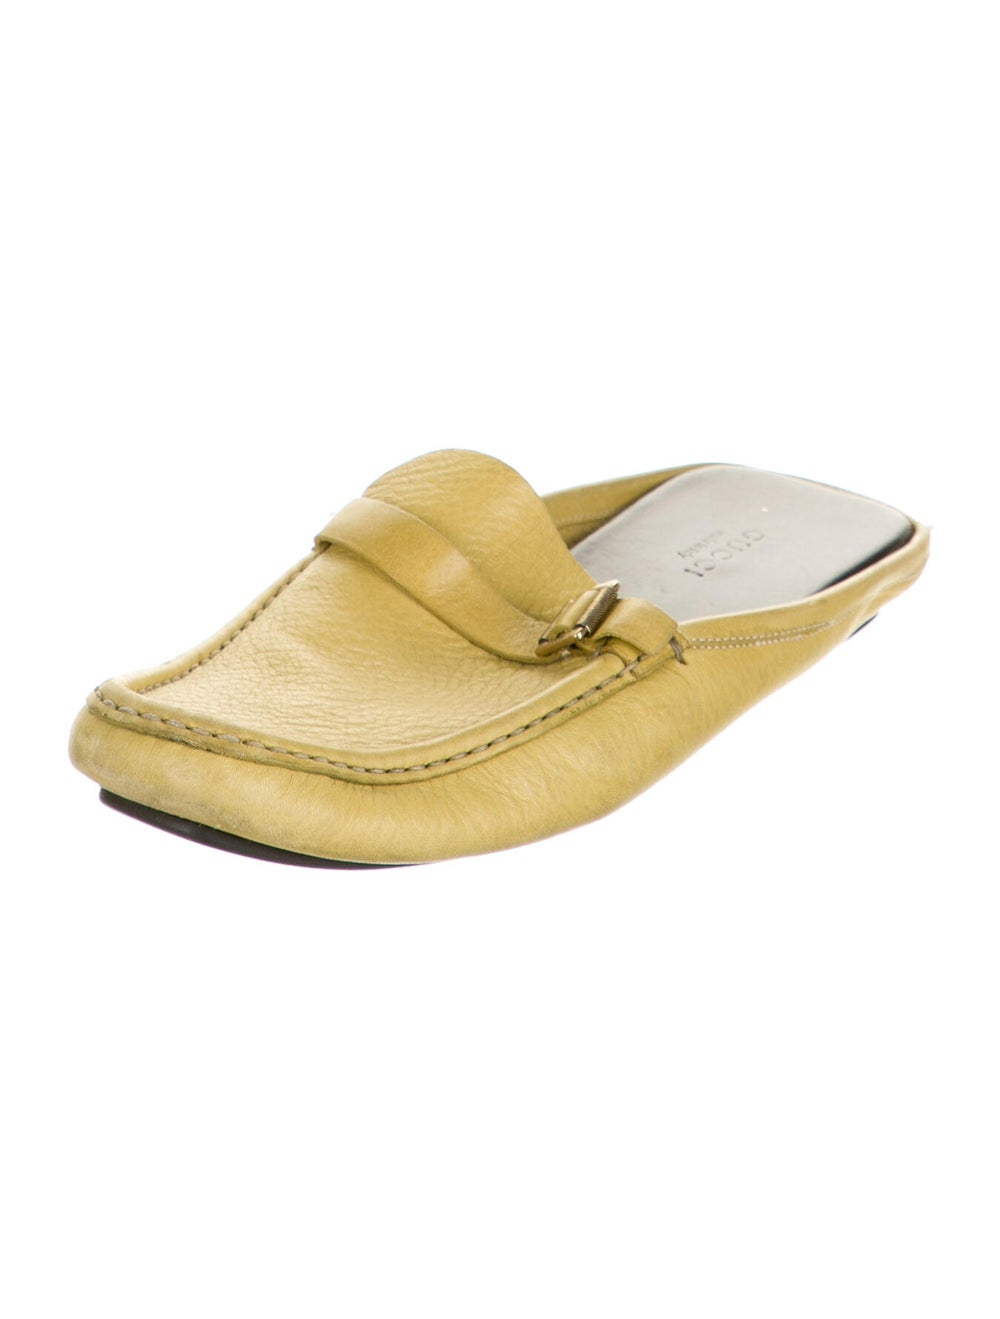 Gucci Leather Mules Yellow - image 2